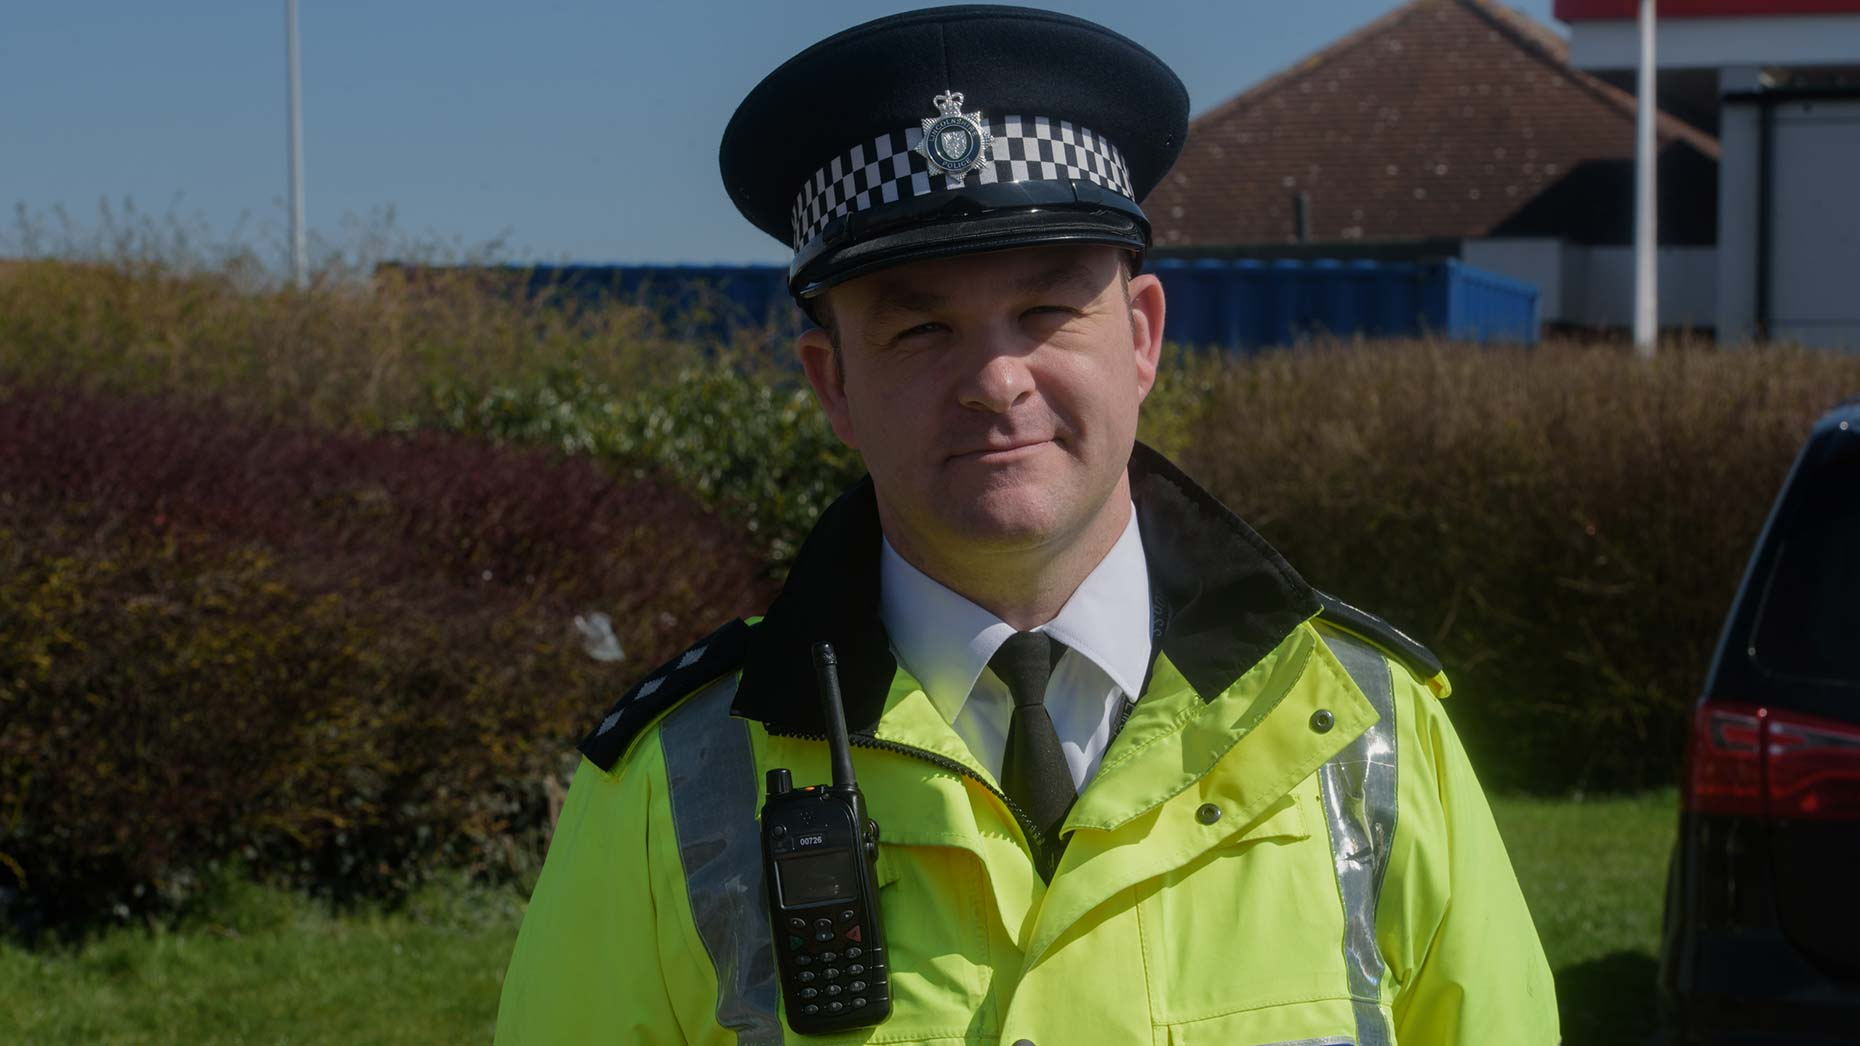 Chief Inspector Phil Vickers of the East Midlands Operational Support Unit